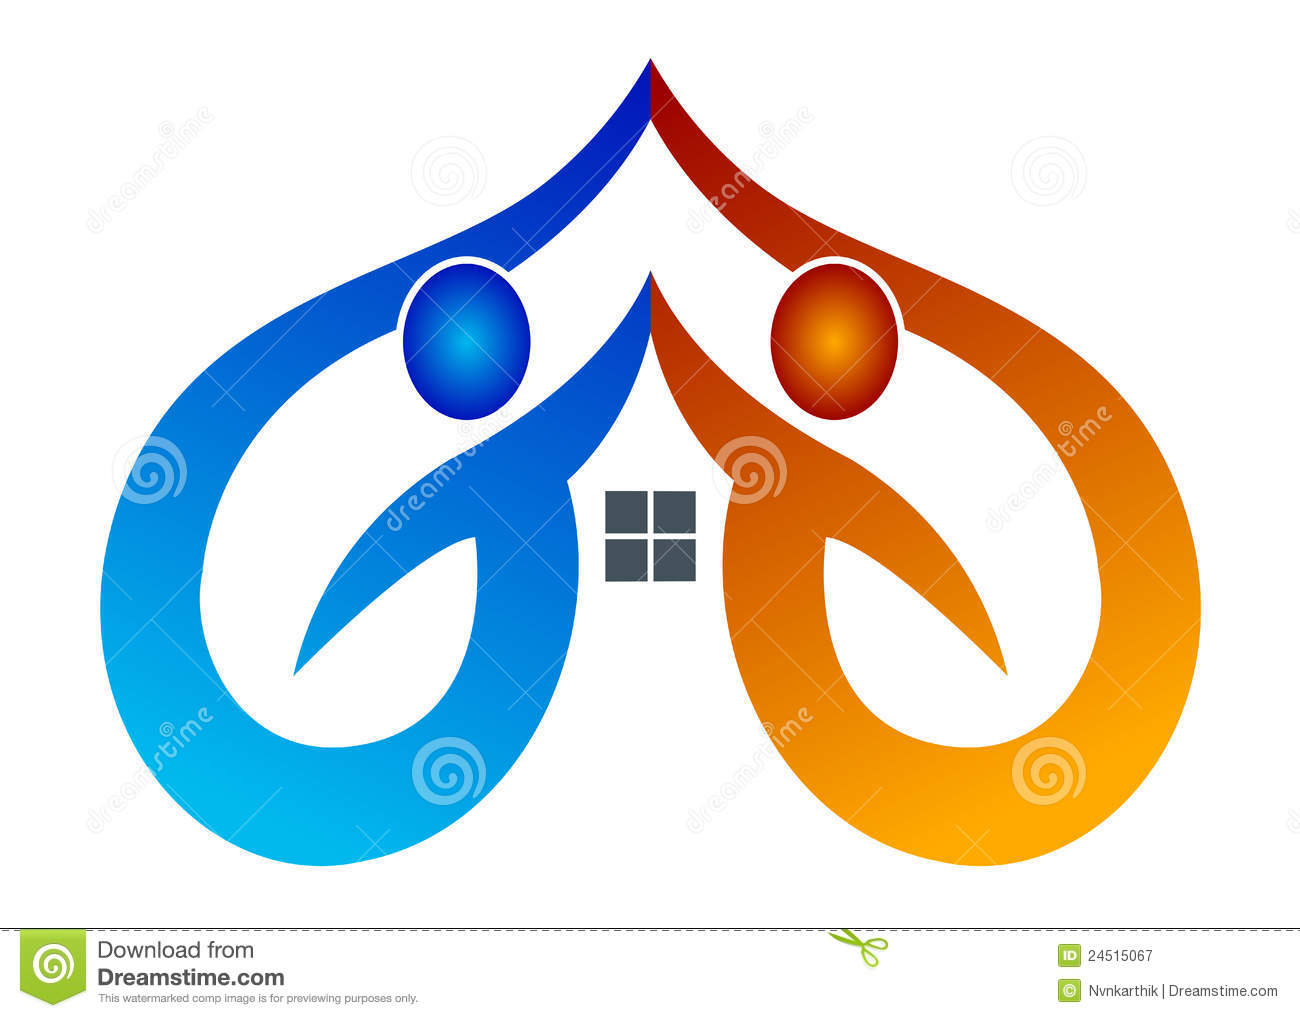 Home logo royalty free stock photography image 24515067 for Household design logo